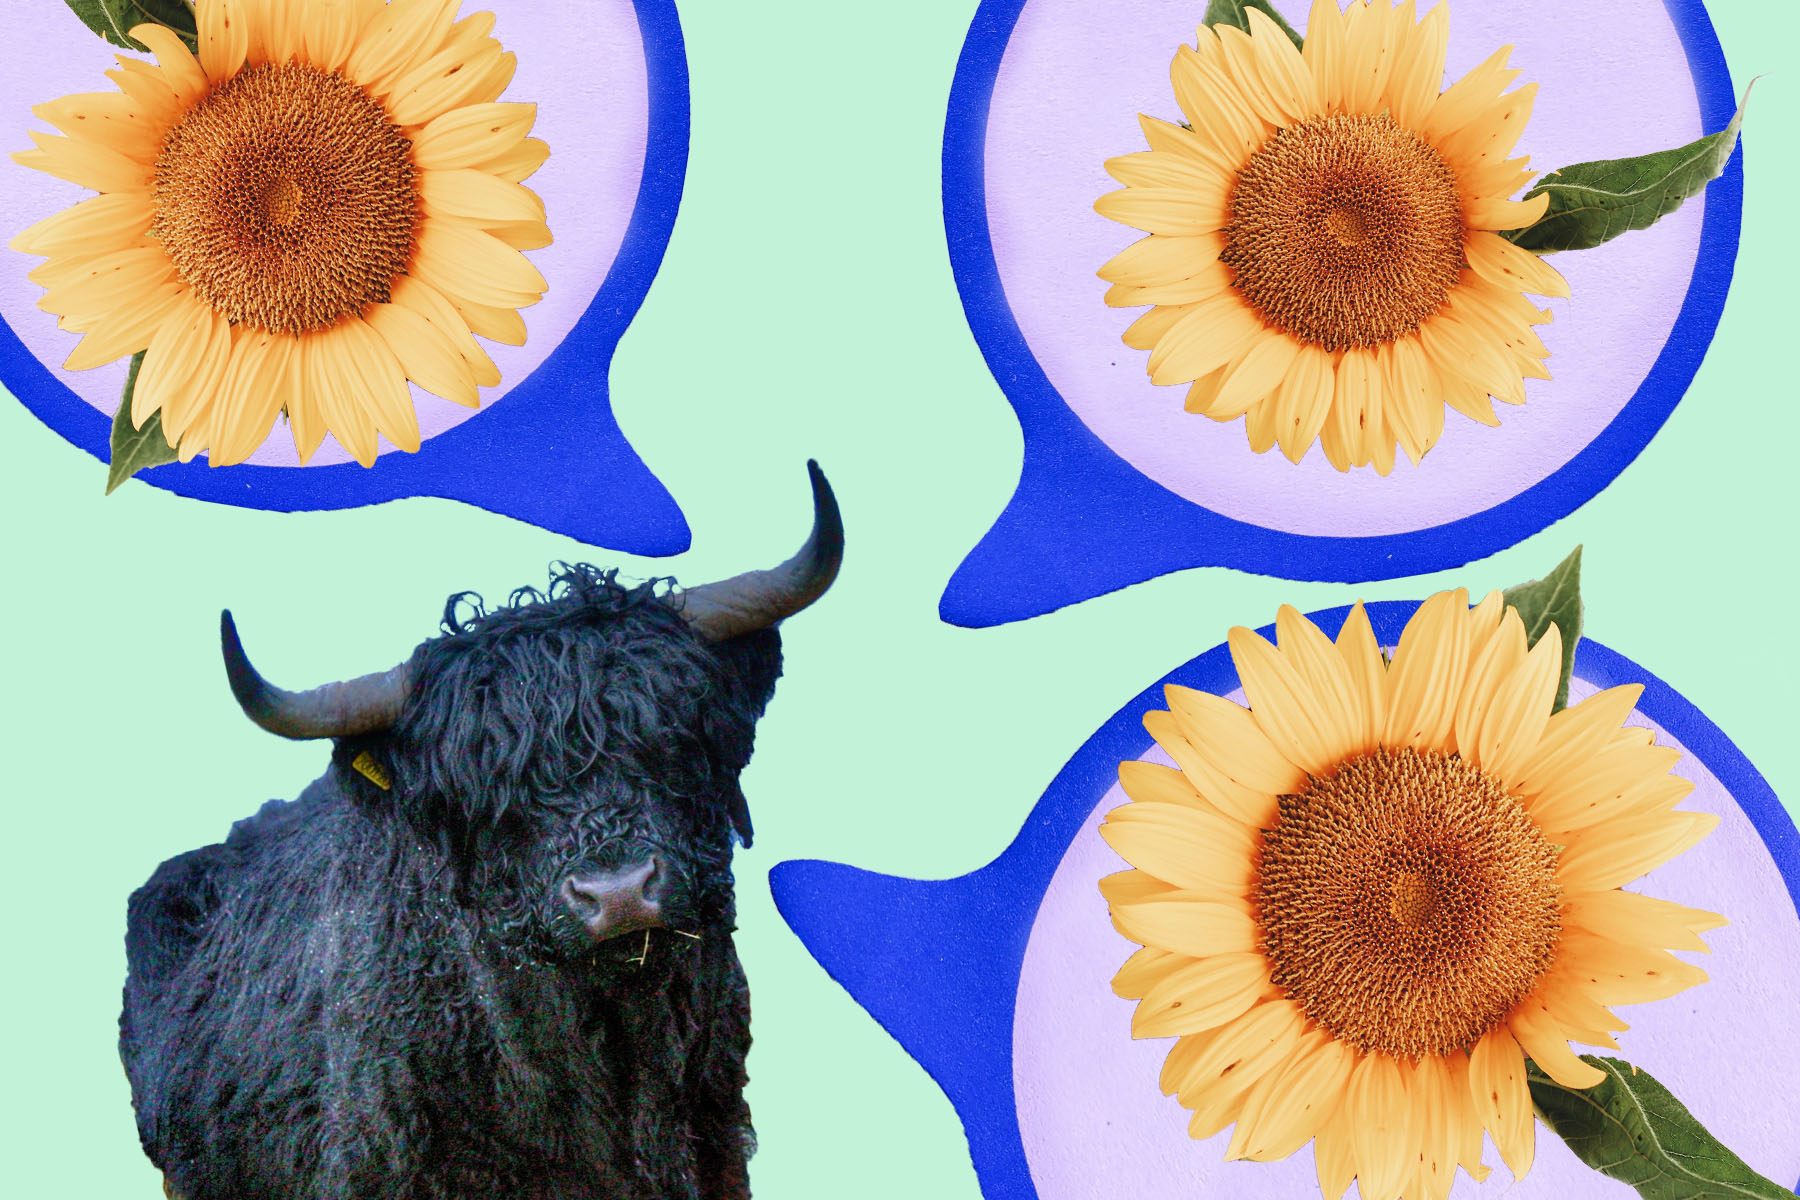 Your Taurus Season Horoscope Is Telling You to Chill Out